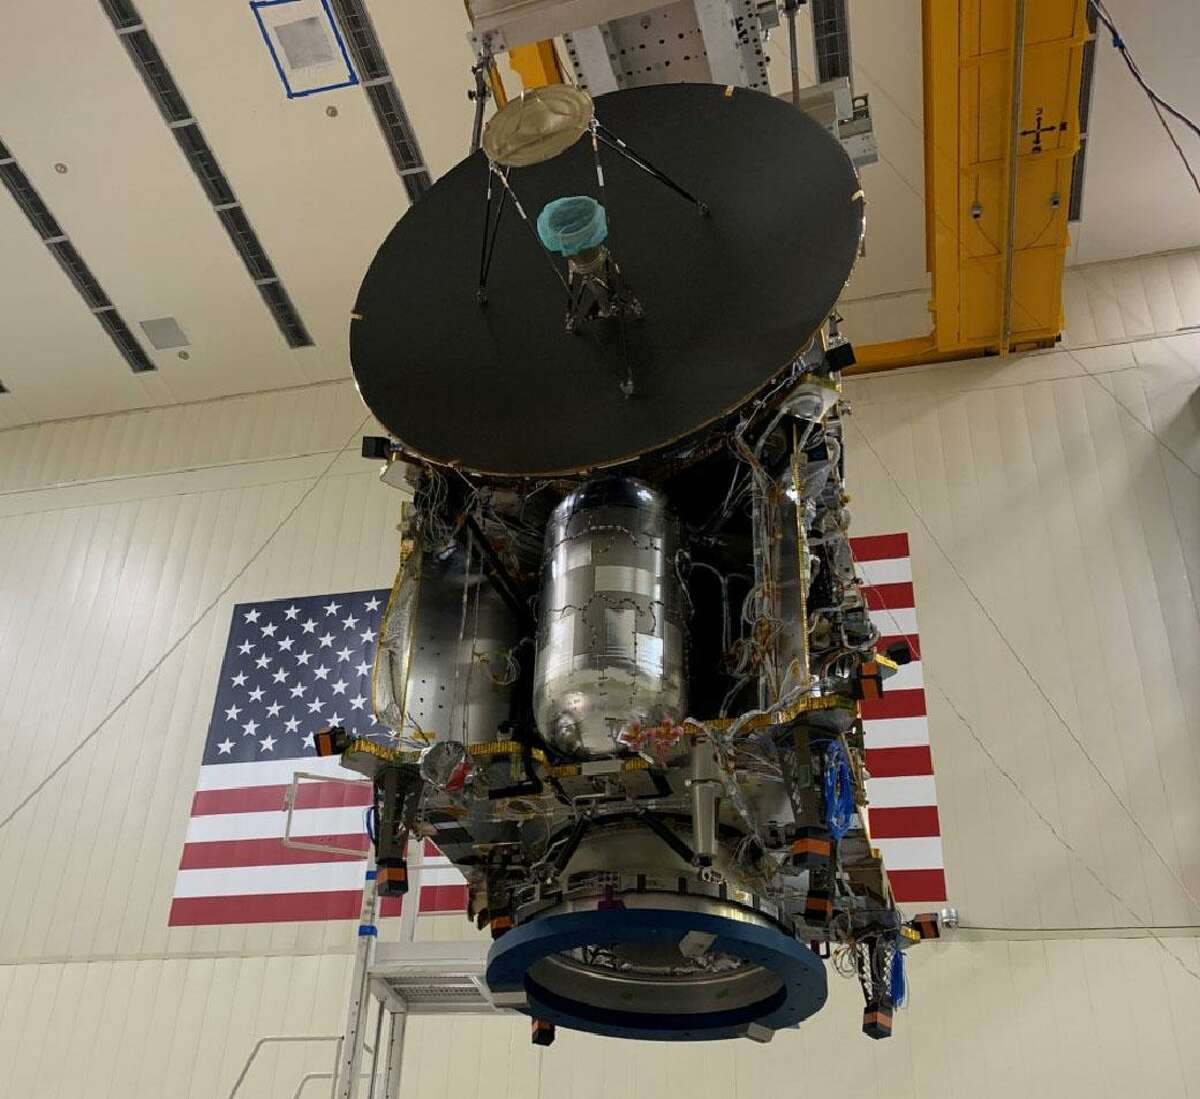 The Lucy spacecraft on Earth